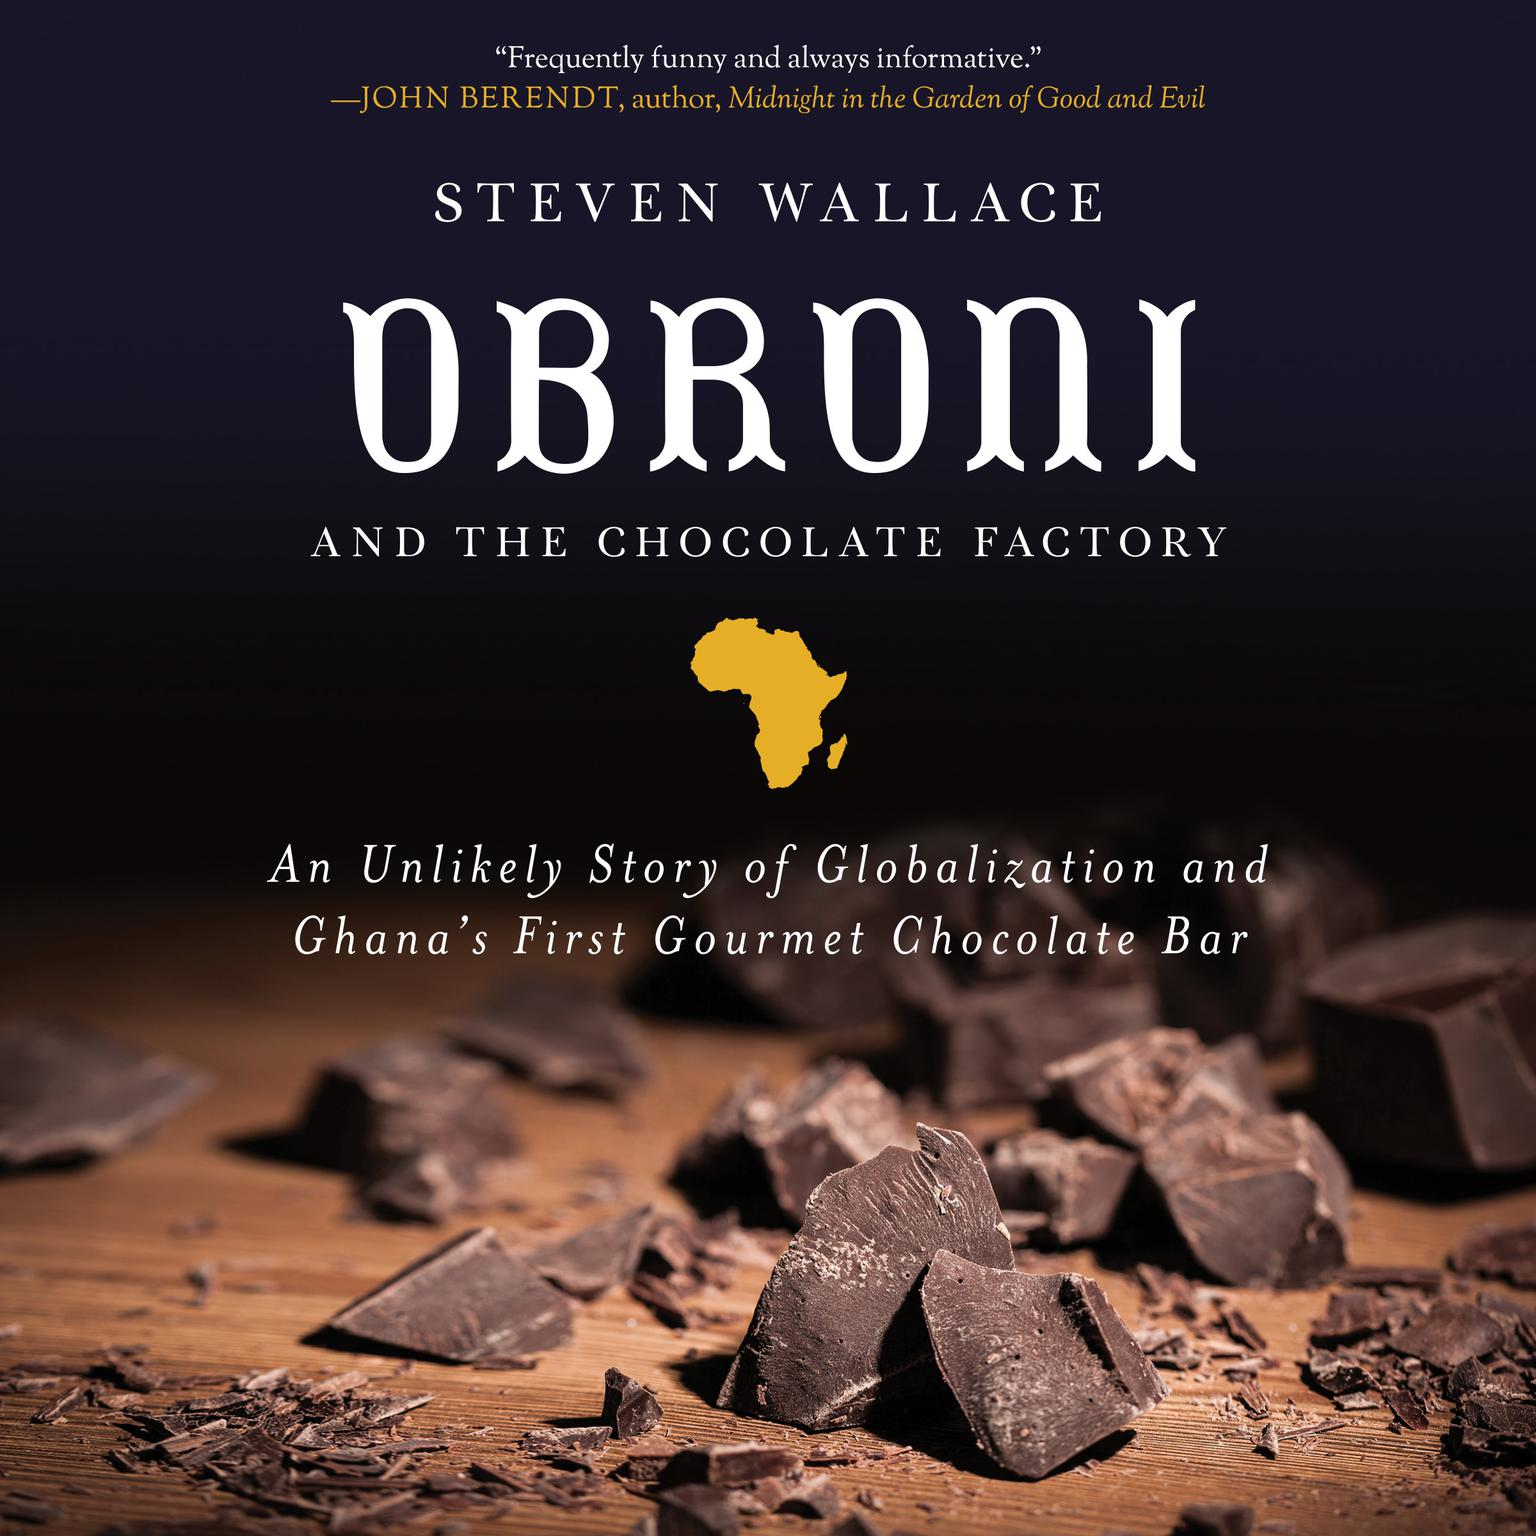 Printable Obroni and the Chocolate Factory: An Unlikely Story of Globalization and Ghana's First Chocolate Bar Audiobook Cover Art